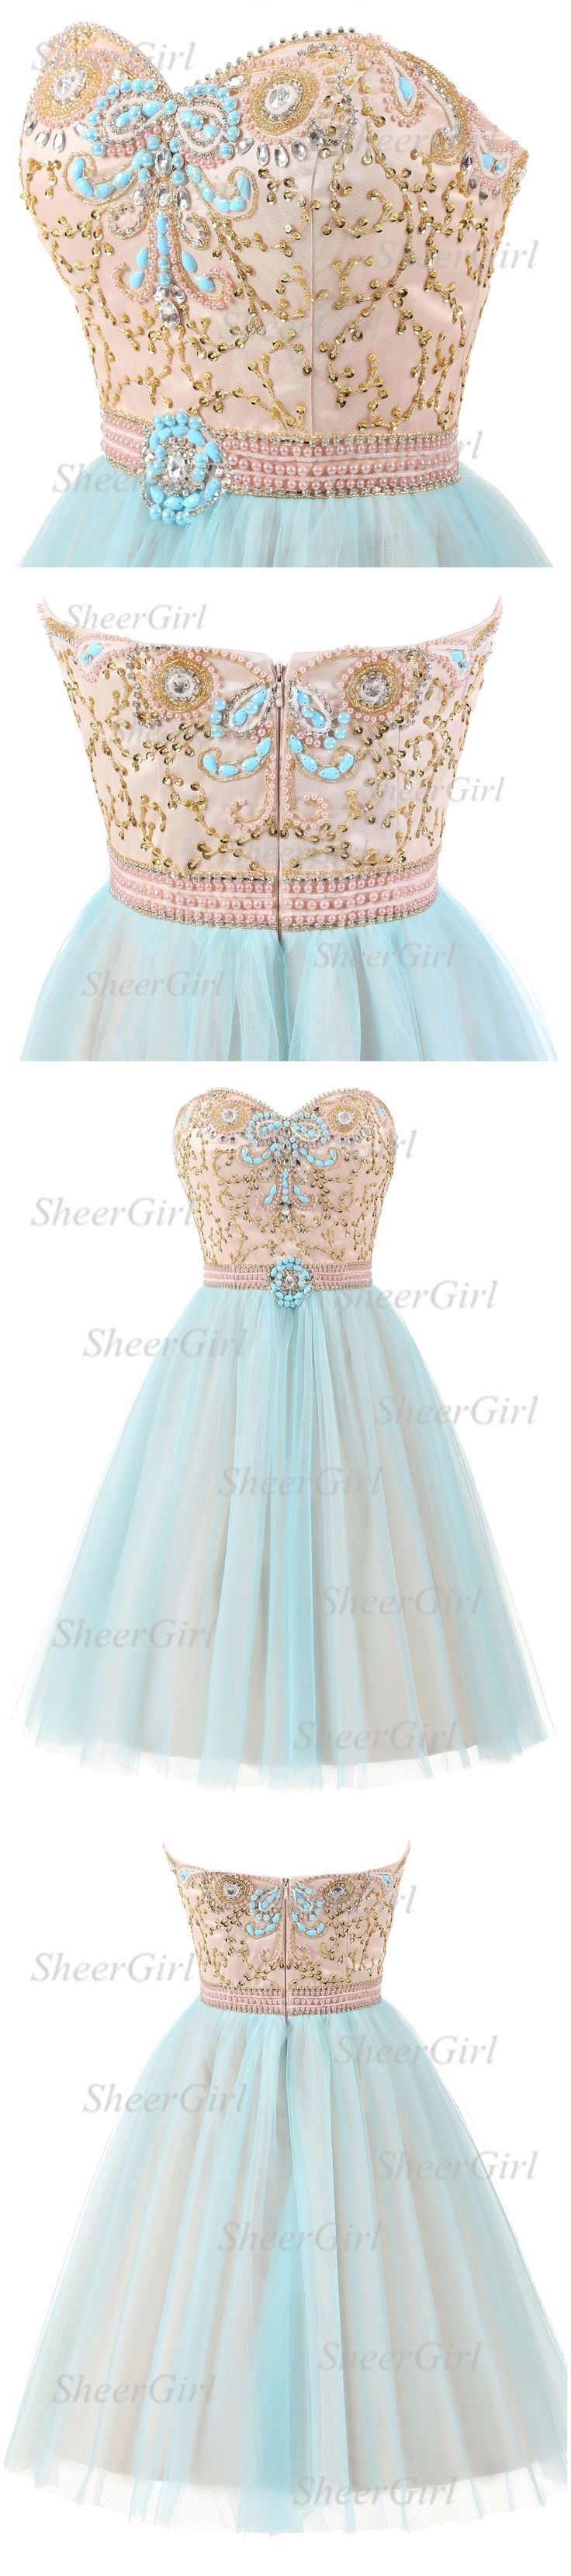 Strapless homecoming dresses,homecoming dresses 207,shinny homecoming dresses with sweetheart neck.